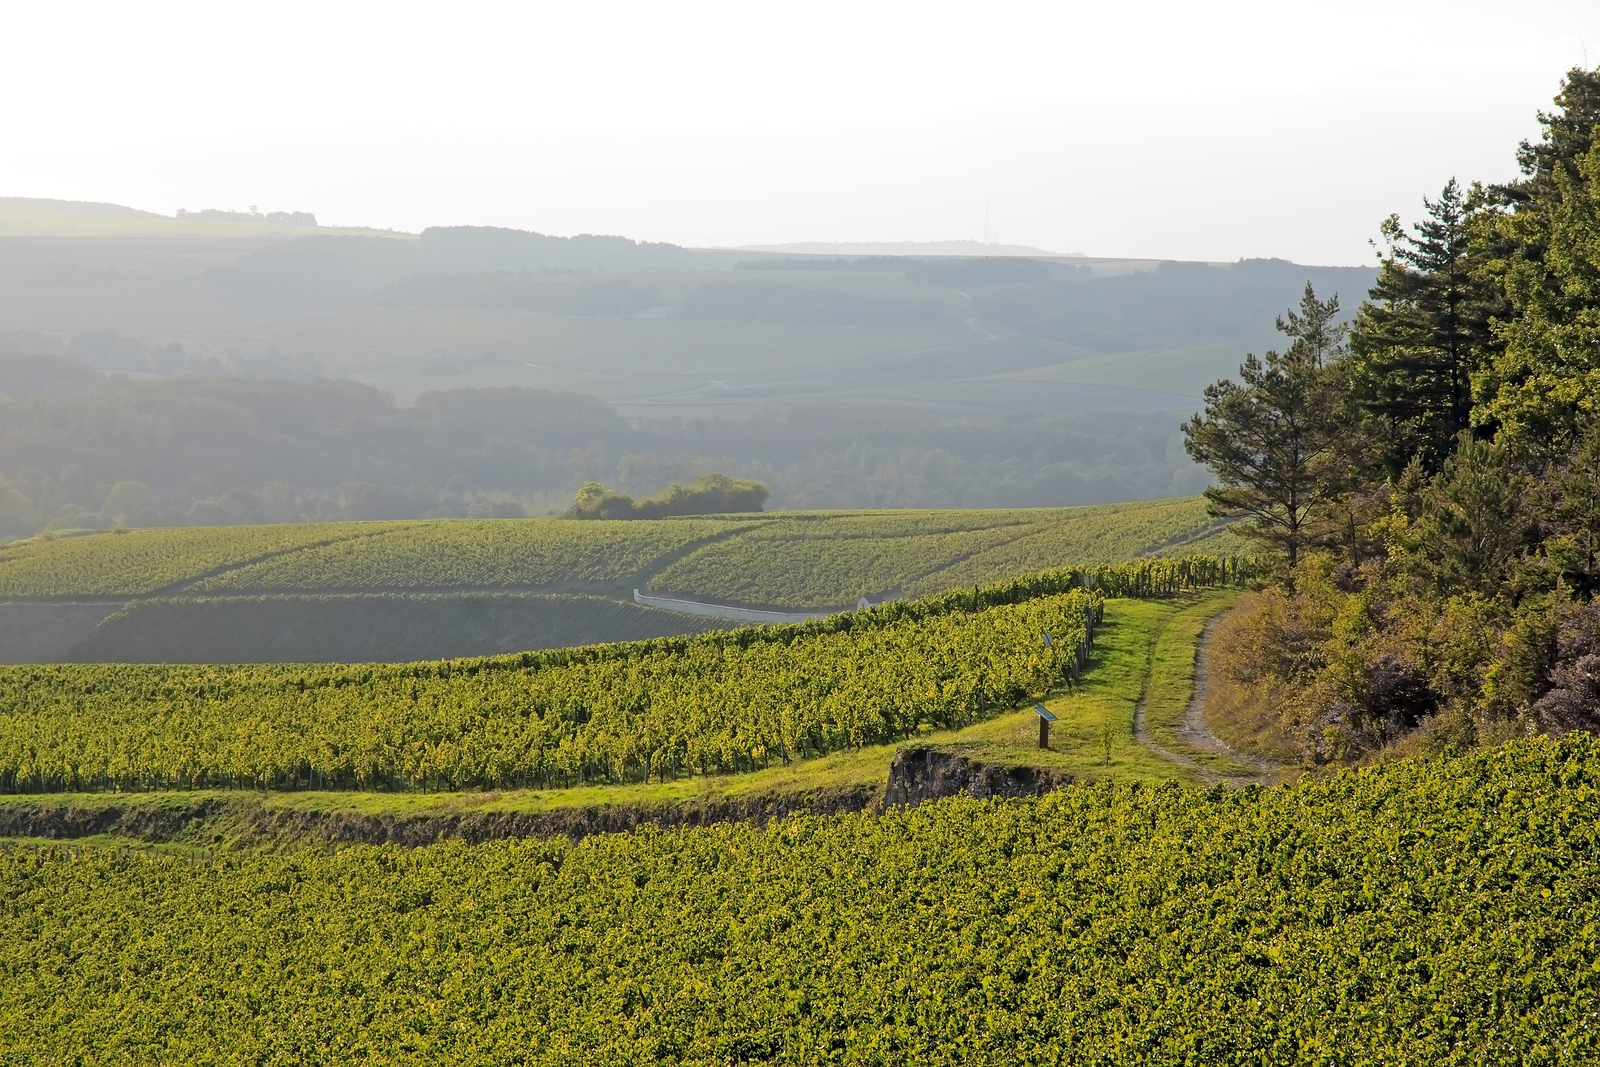 Landscape of vineyards near Chablis, France.